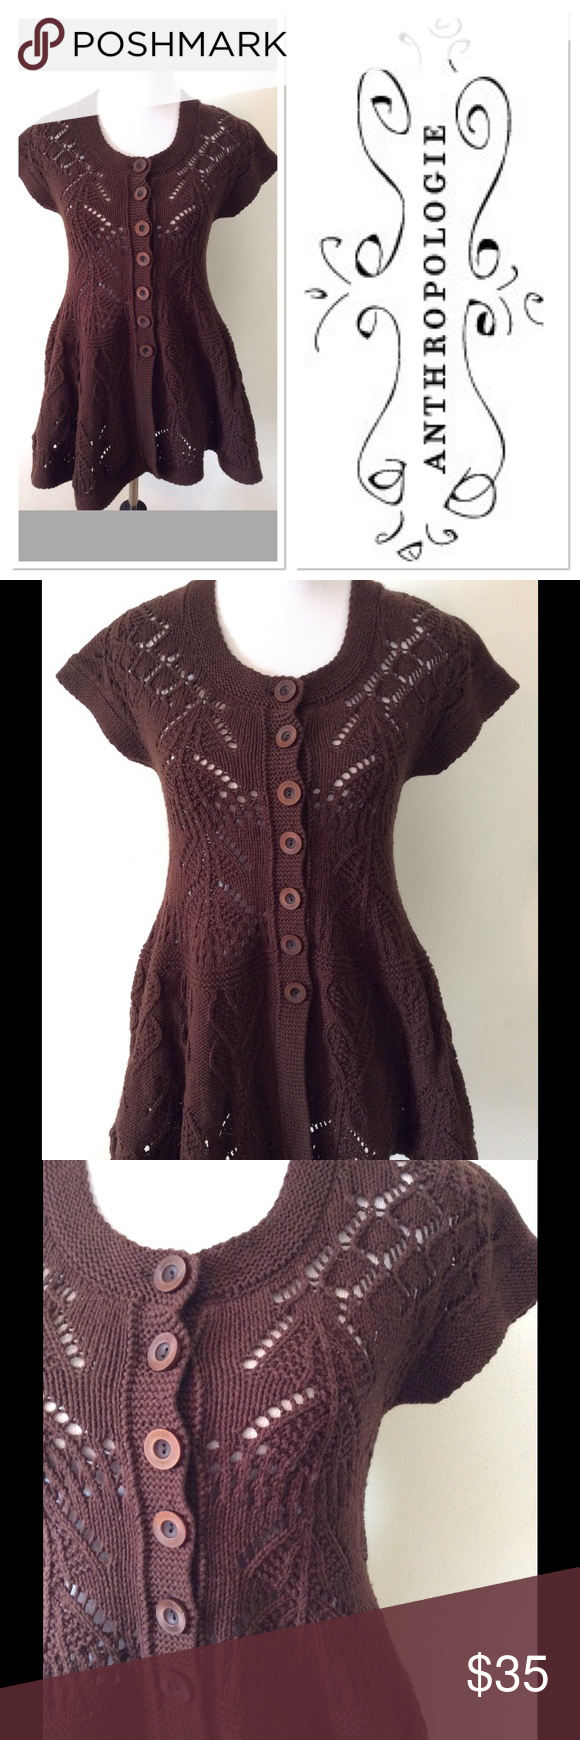 S ANTHROPOLOGIE Sparrow brown button up sweater | Anthropologie ...